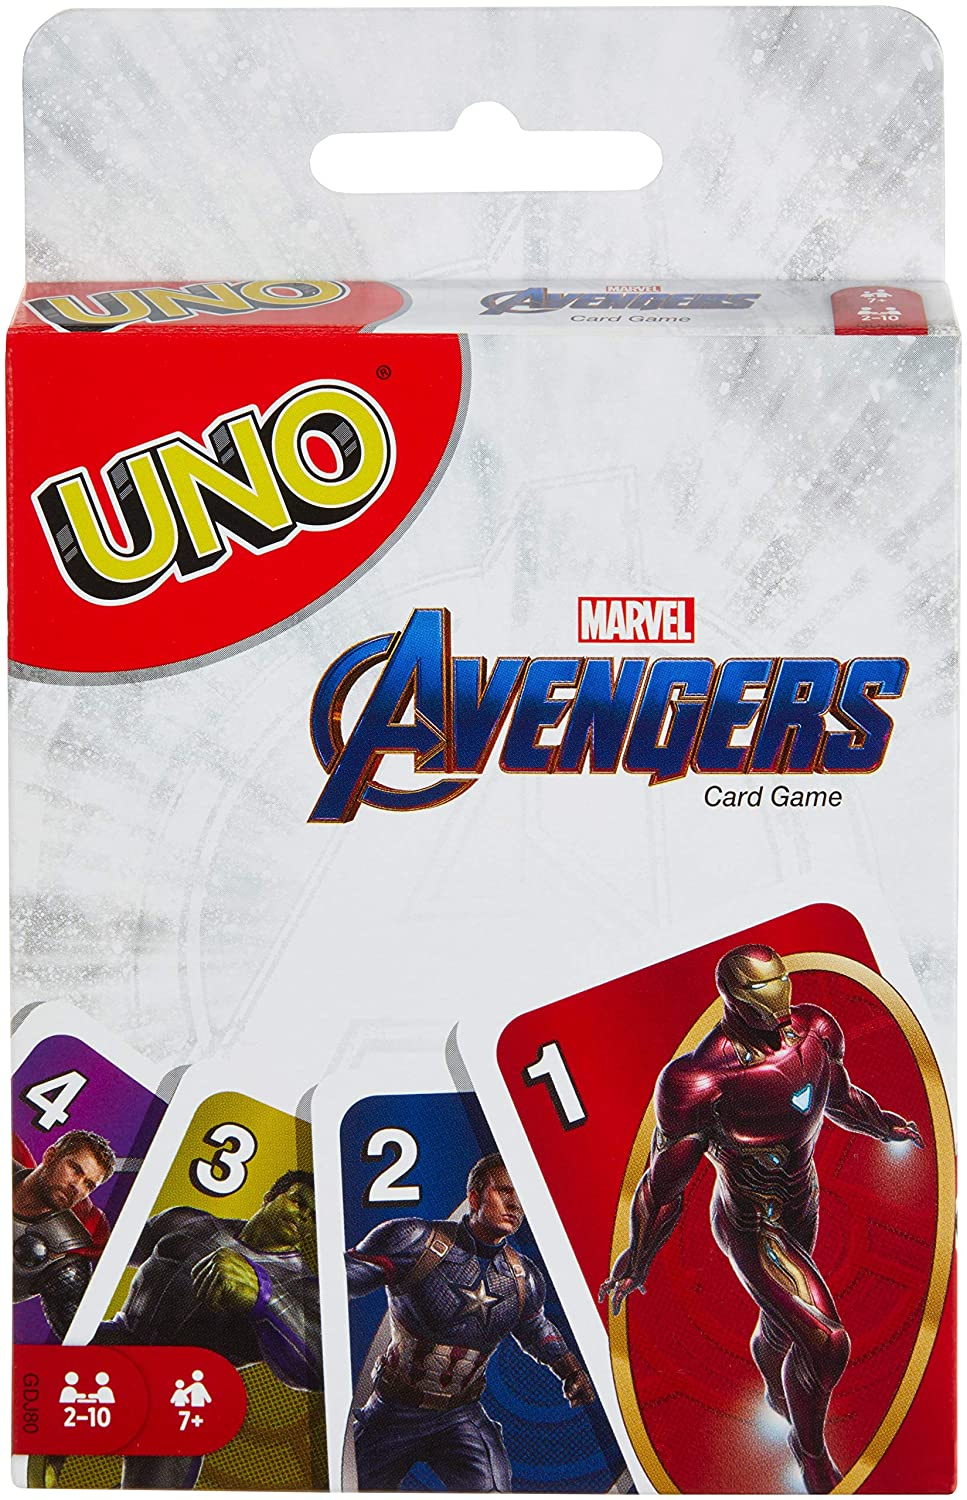 UNO Avengers Card Game